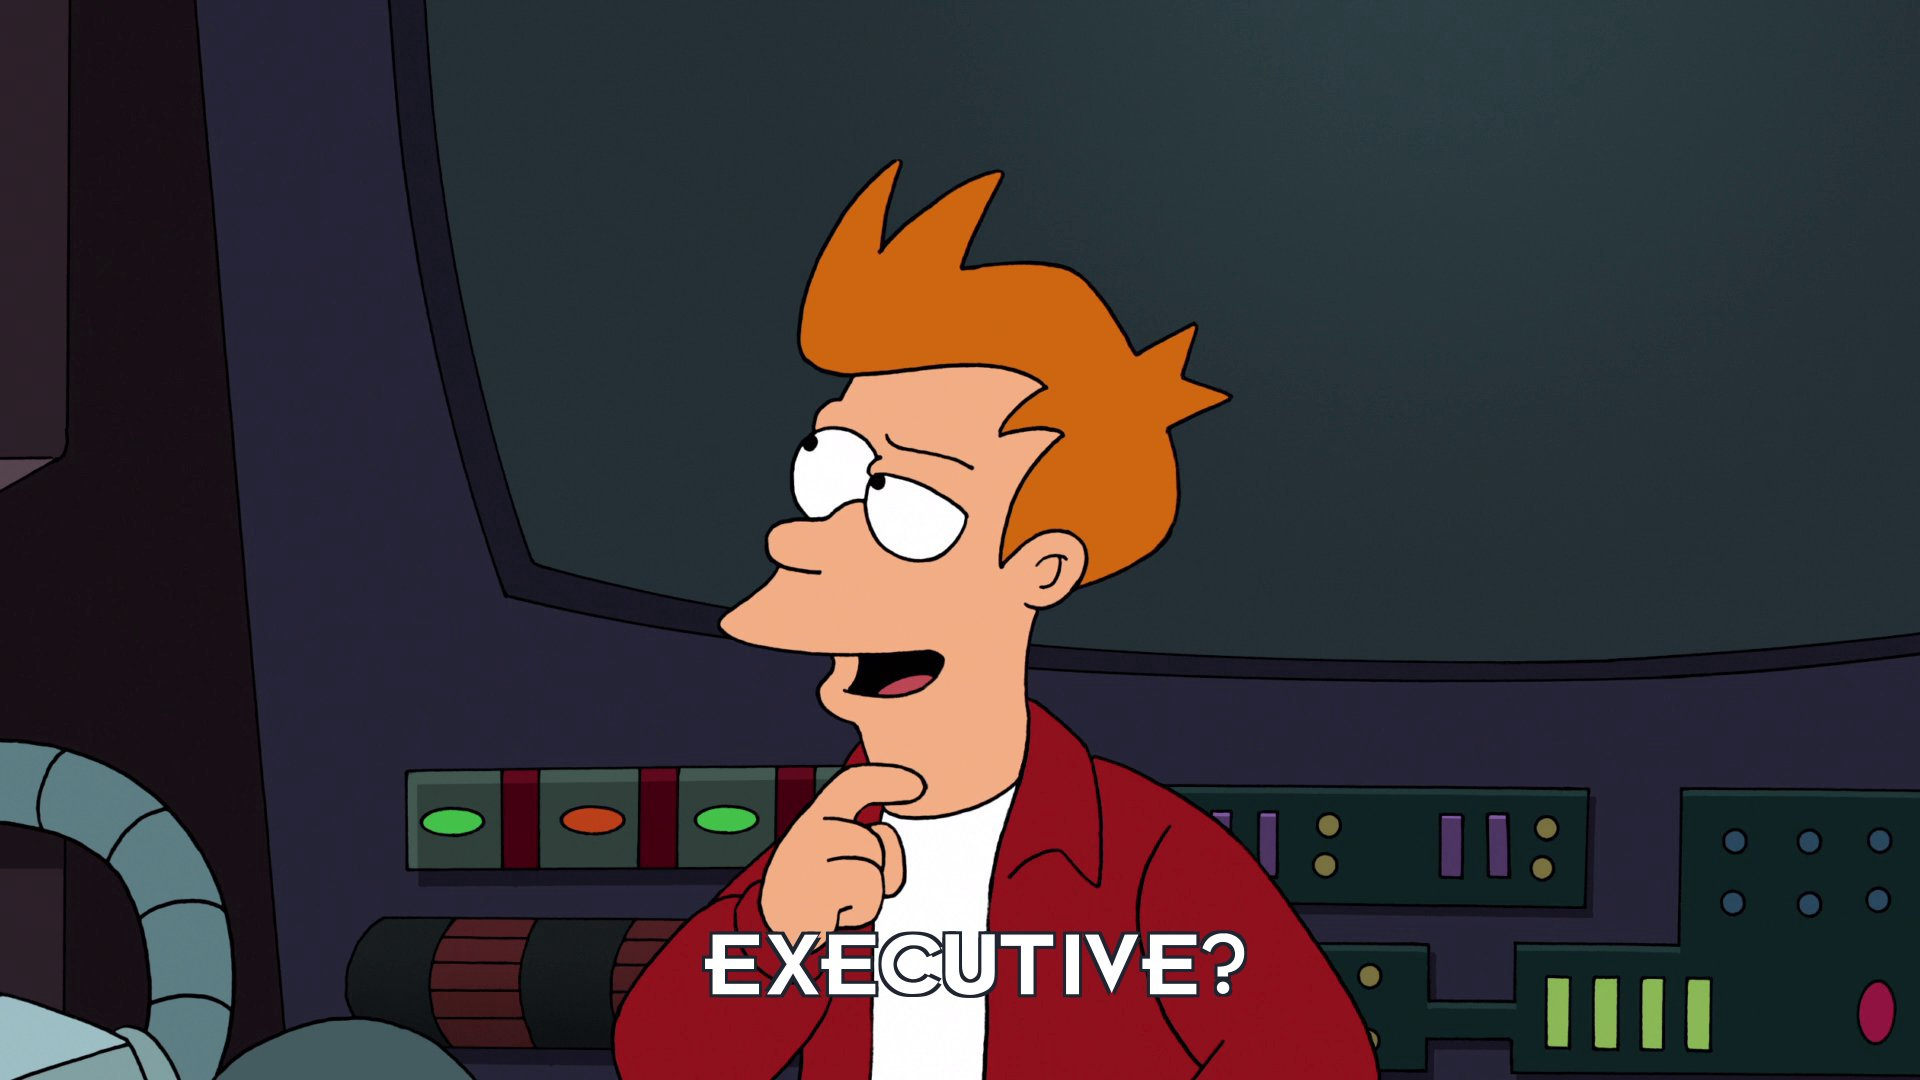 Philip J Fry: Executive?